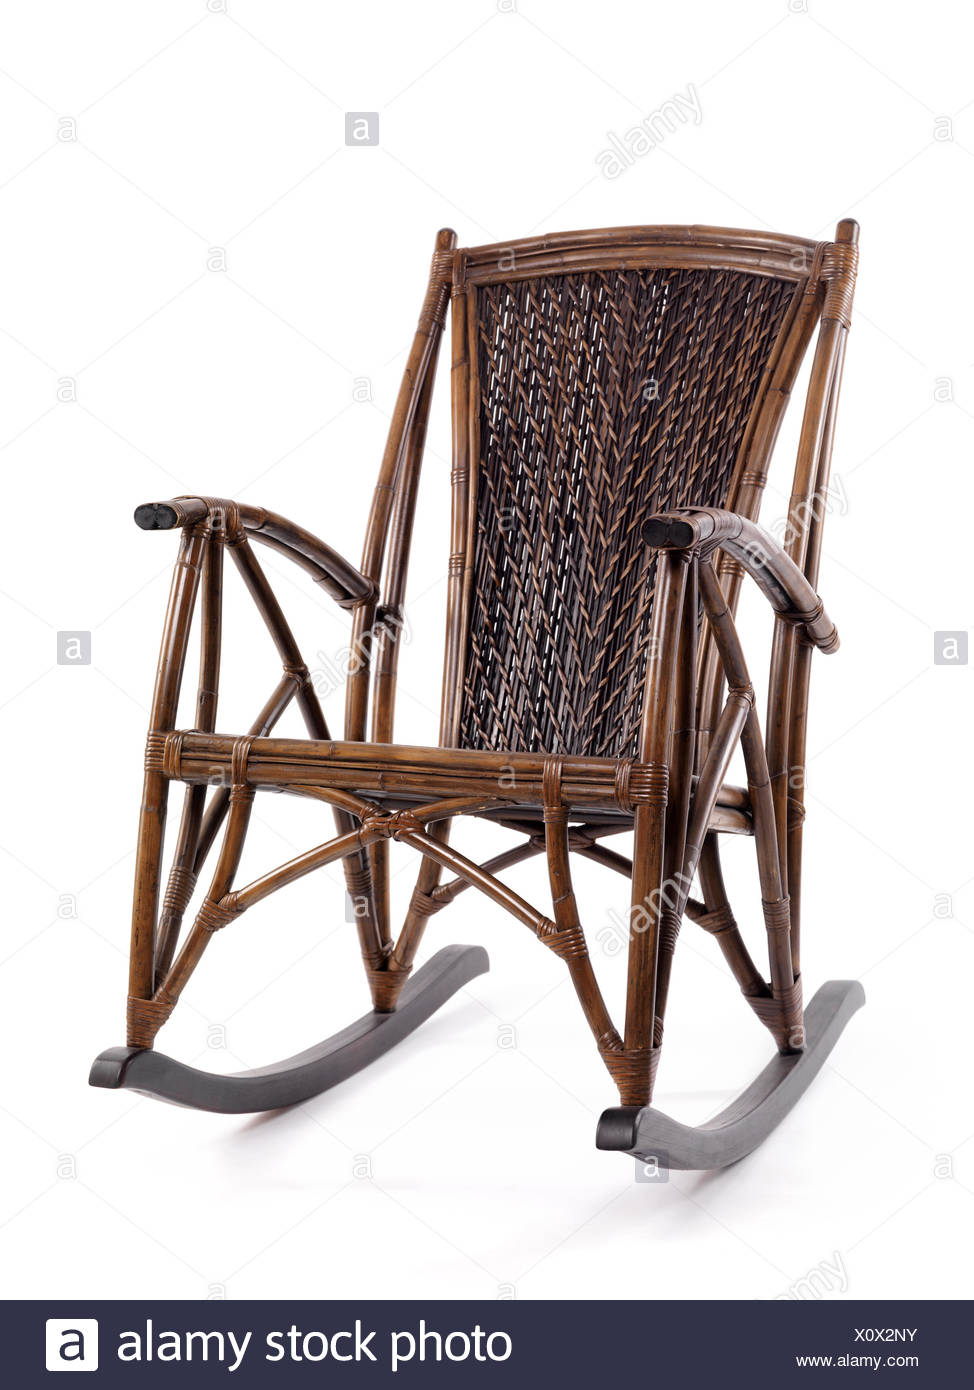 Antique Bamboo Wicker Rocking Chair   Stock Image